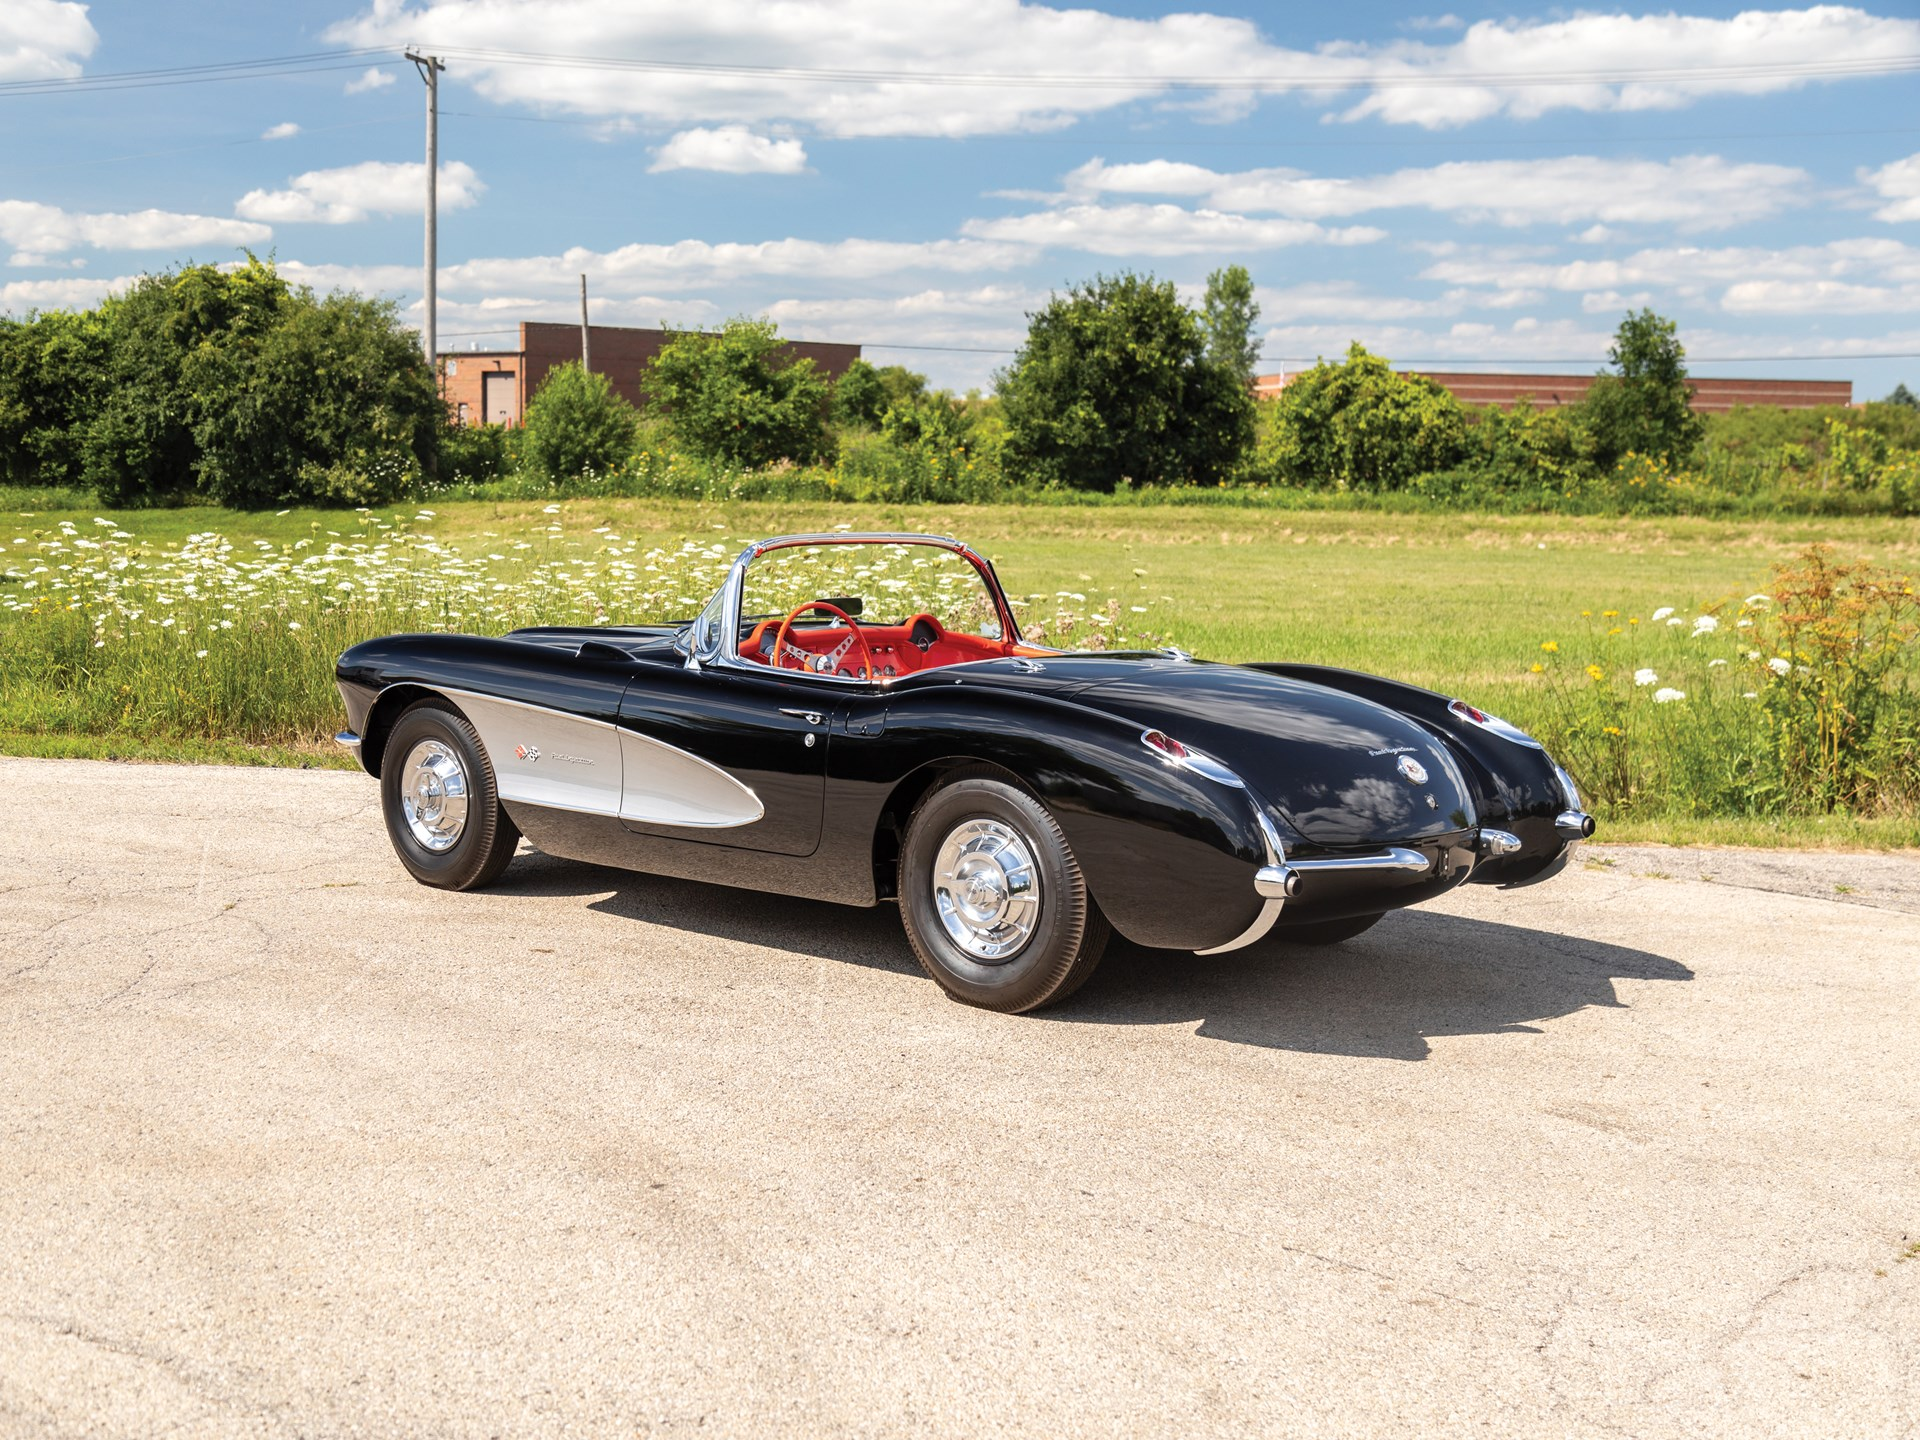 1957 Chevrolet Corvette 'Fuel-Injected'